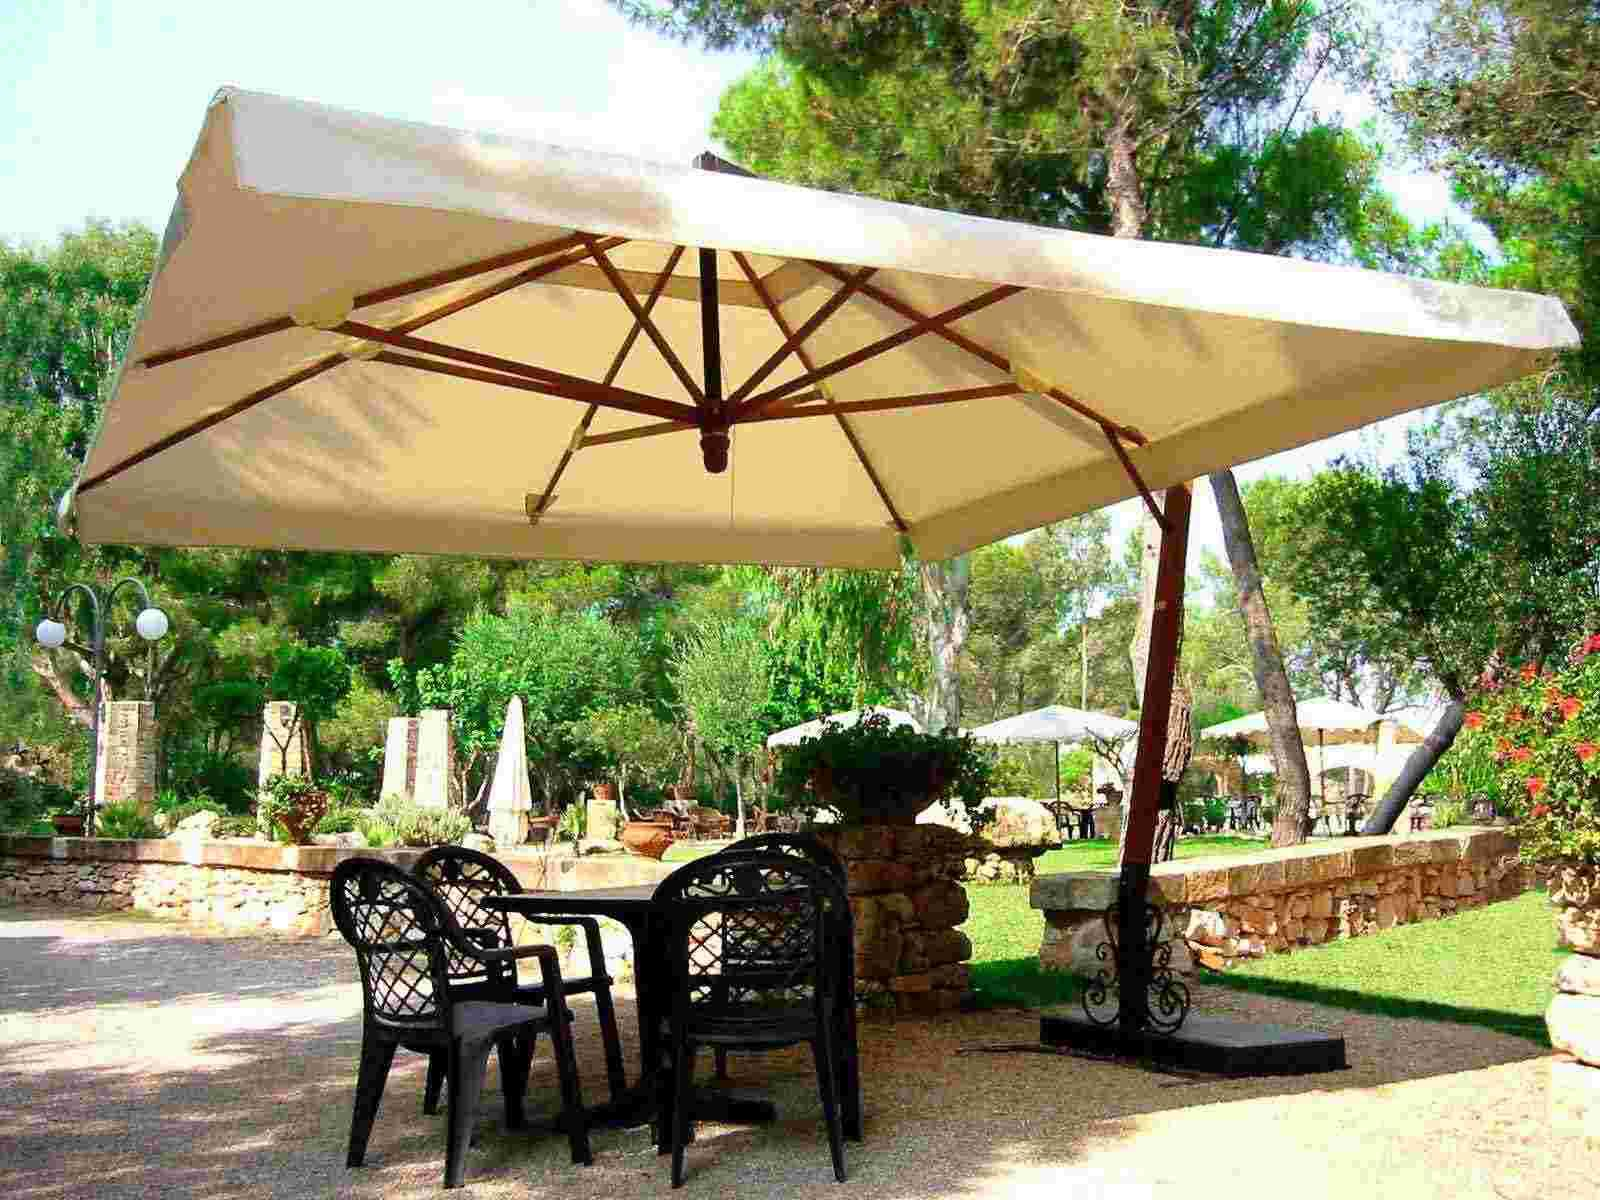 Patio Umbrella A Comprehensive Care And Maintenance Guide Imperial Cleaning